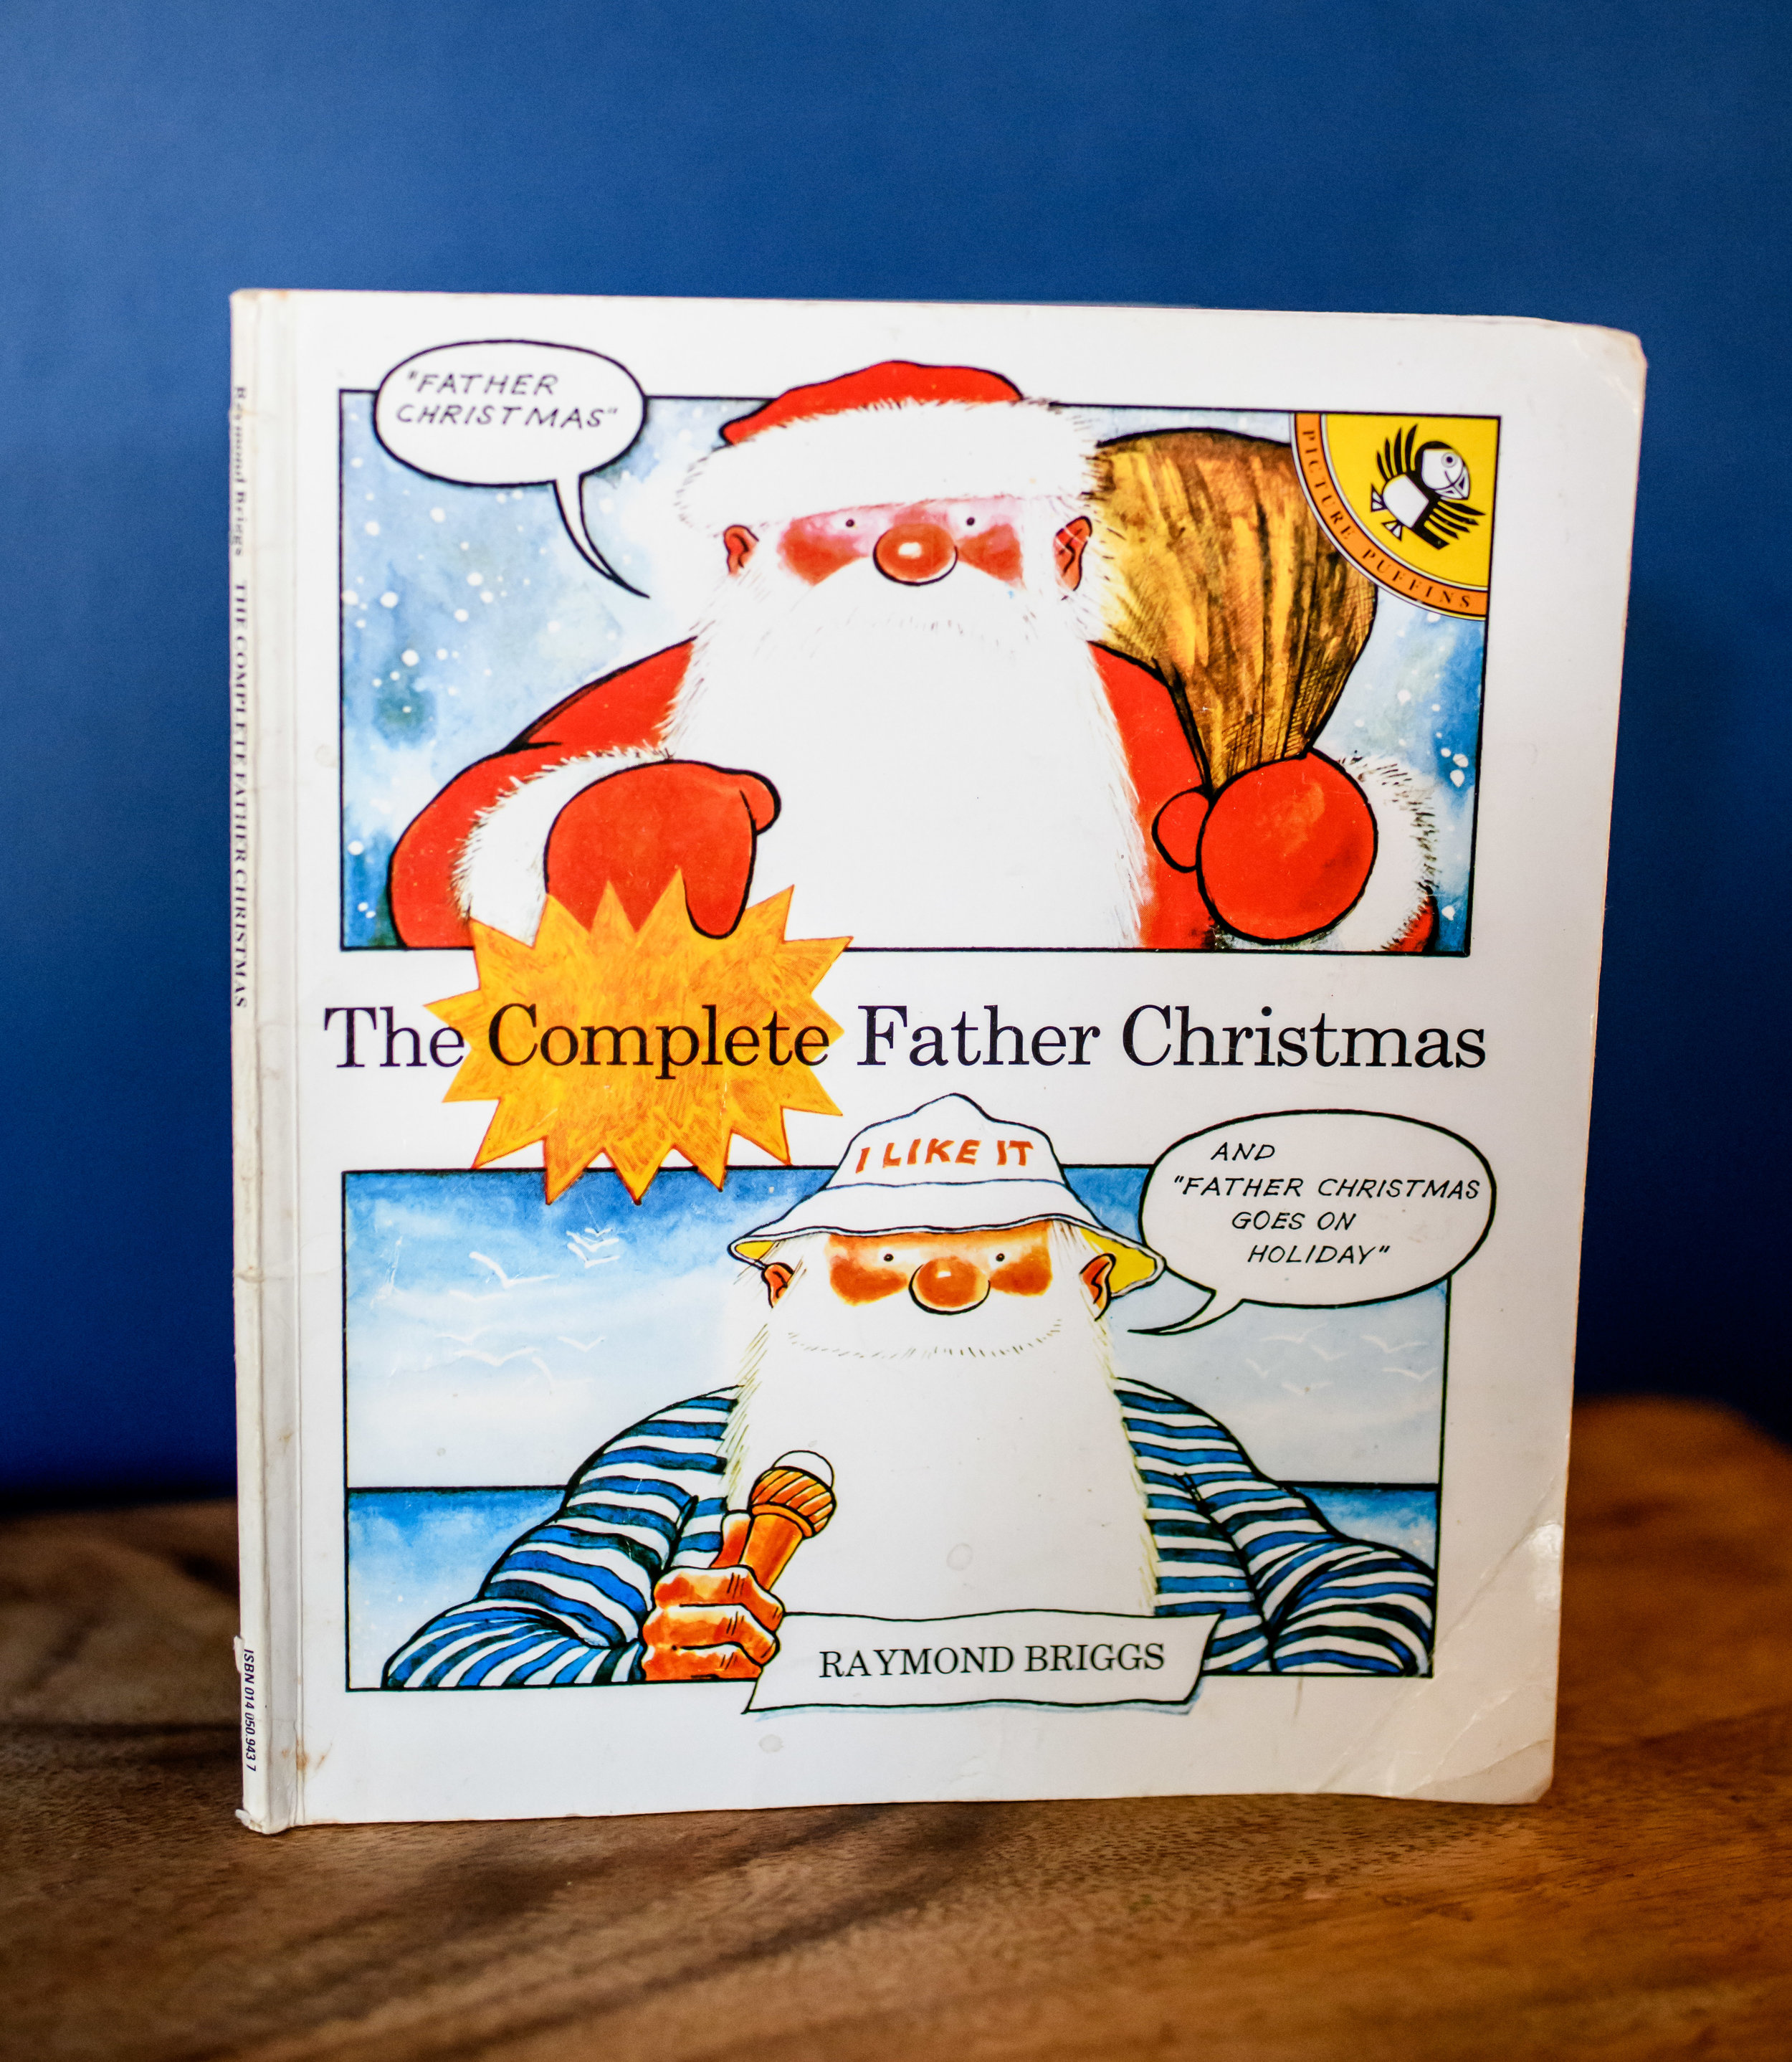 My version includes Father Christmas goes on holiday too!